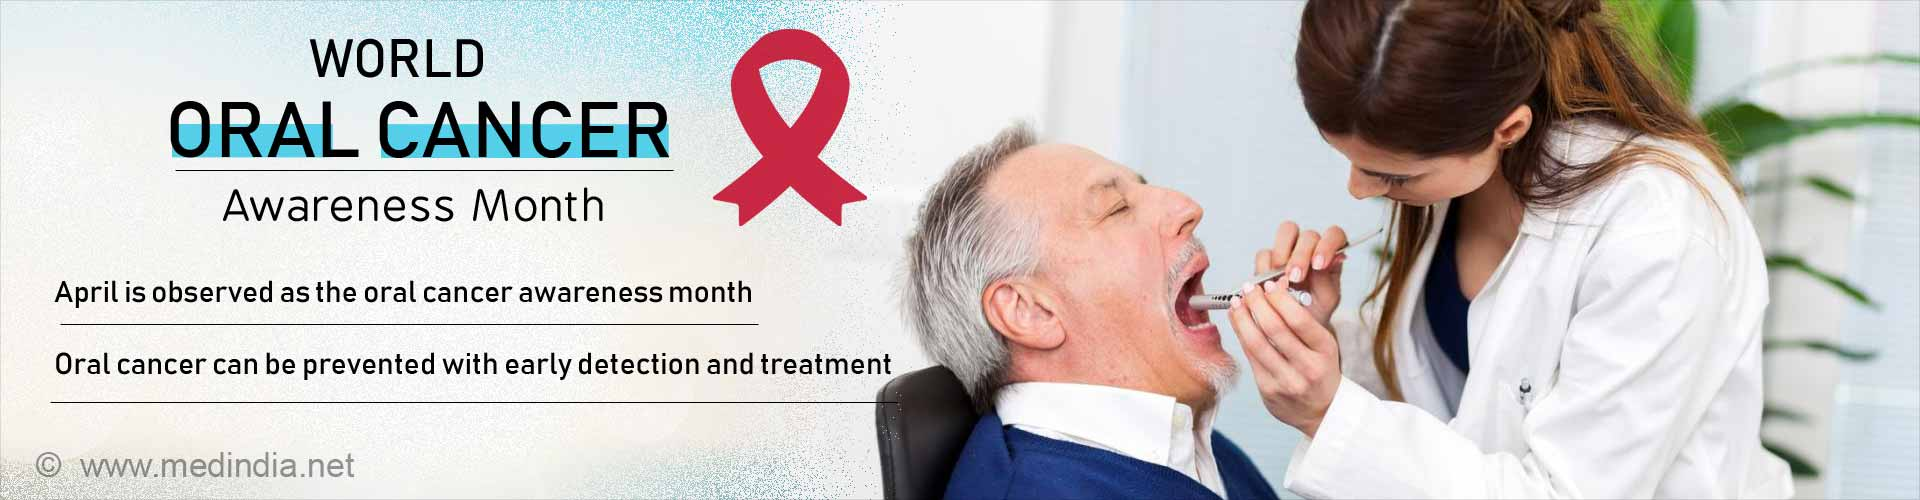 World Oral Cancer Awareness Month